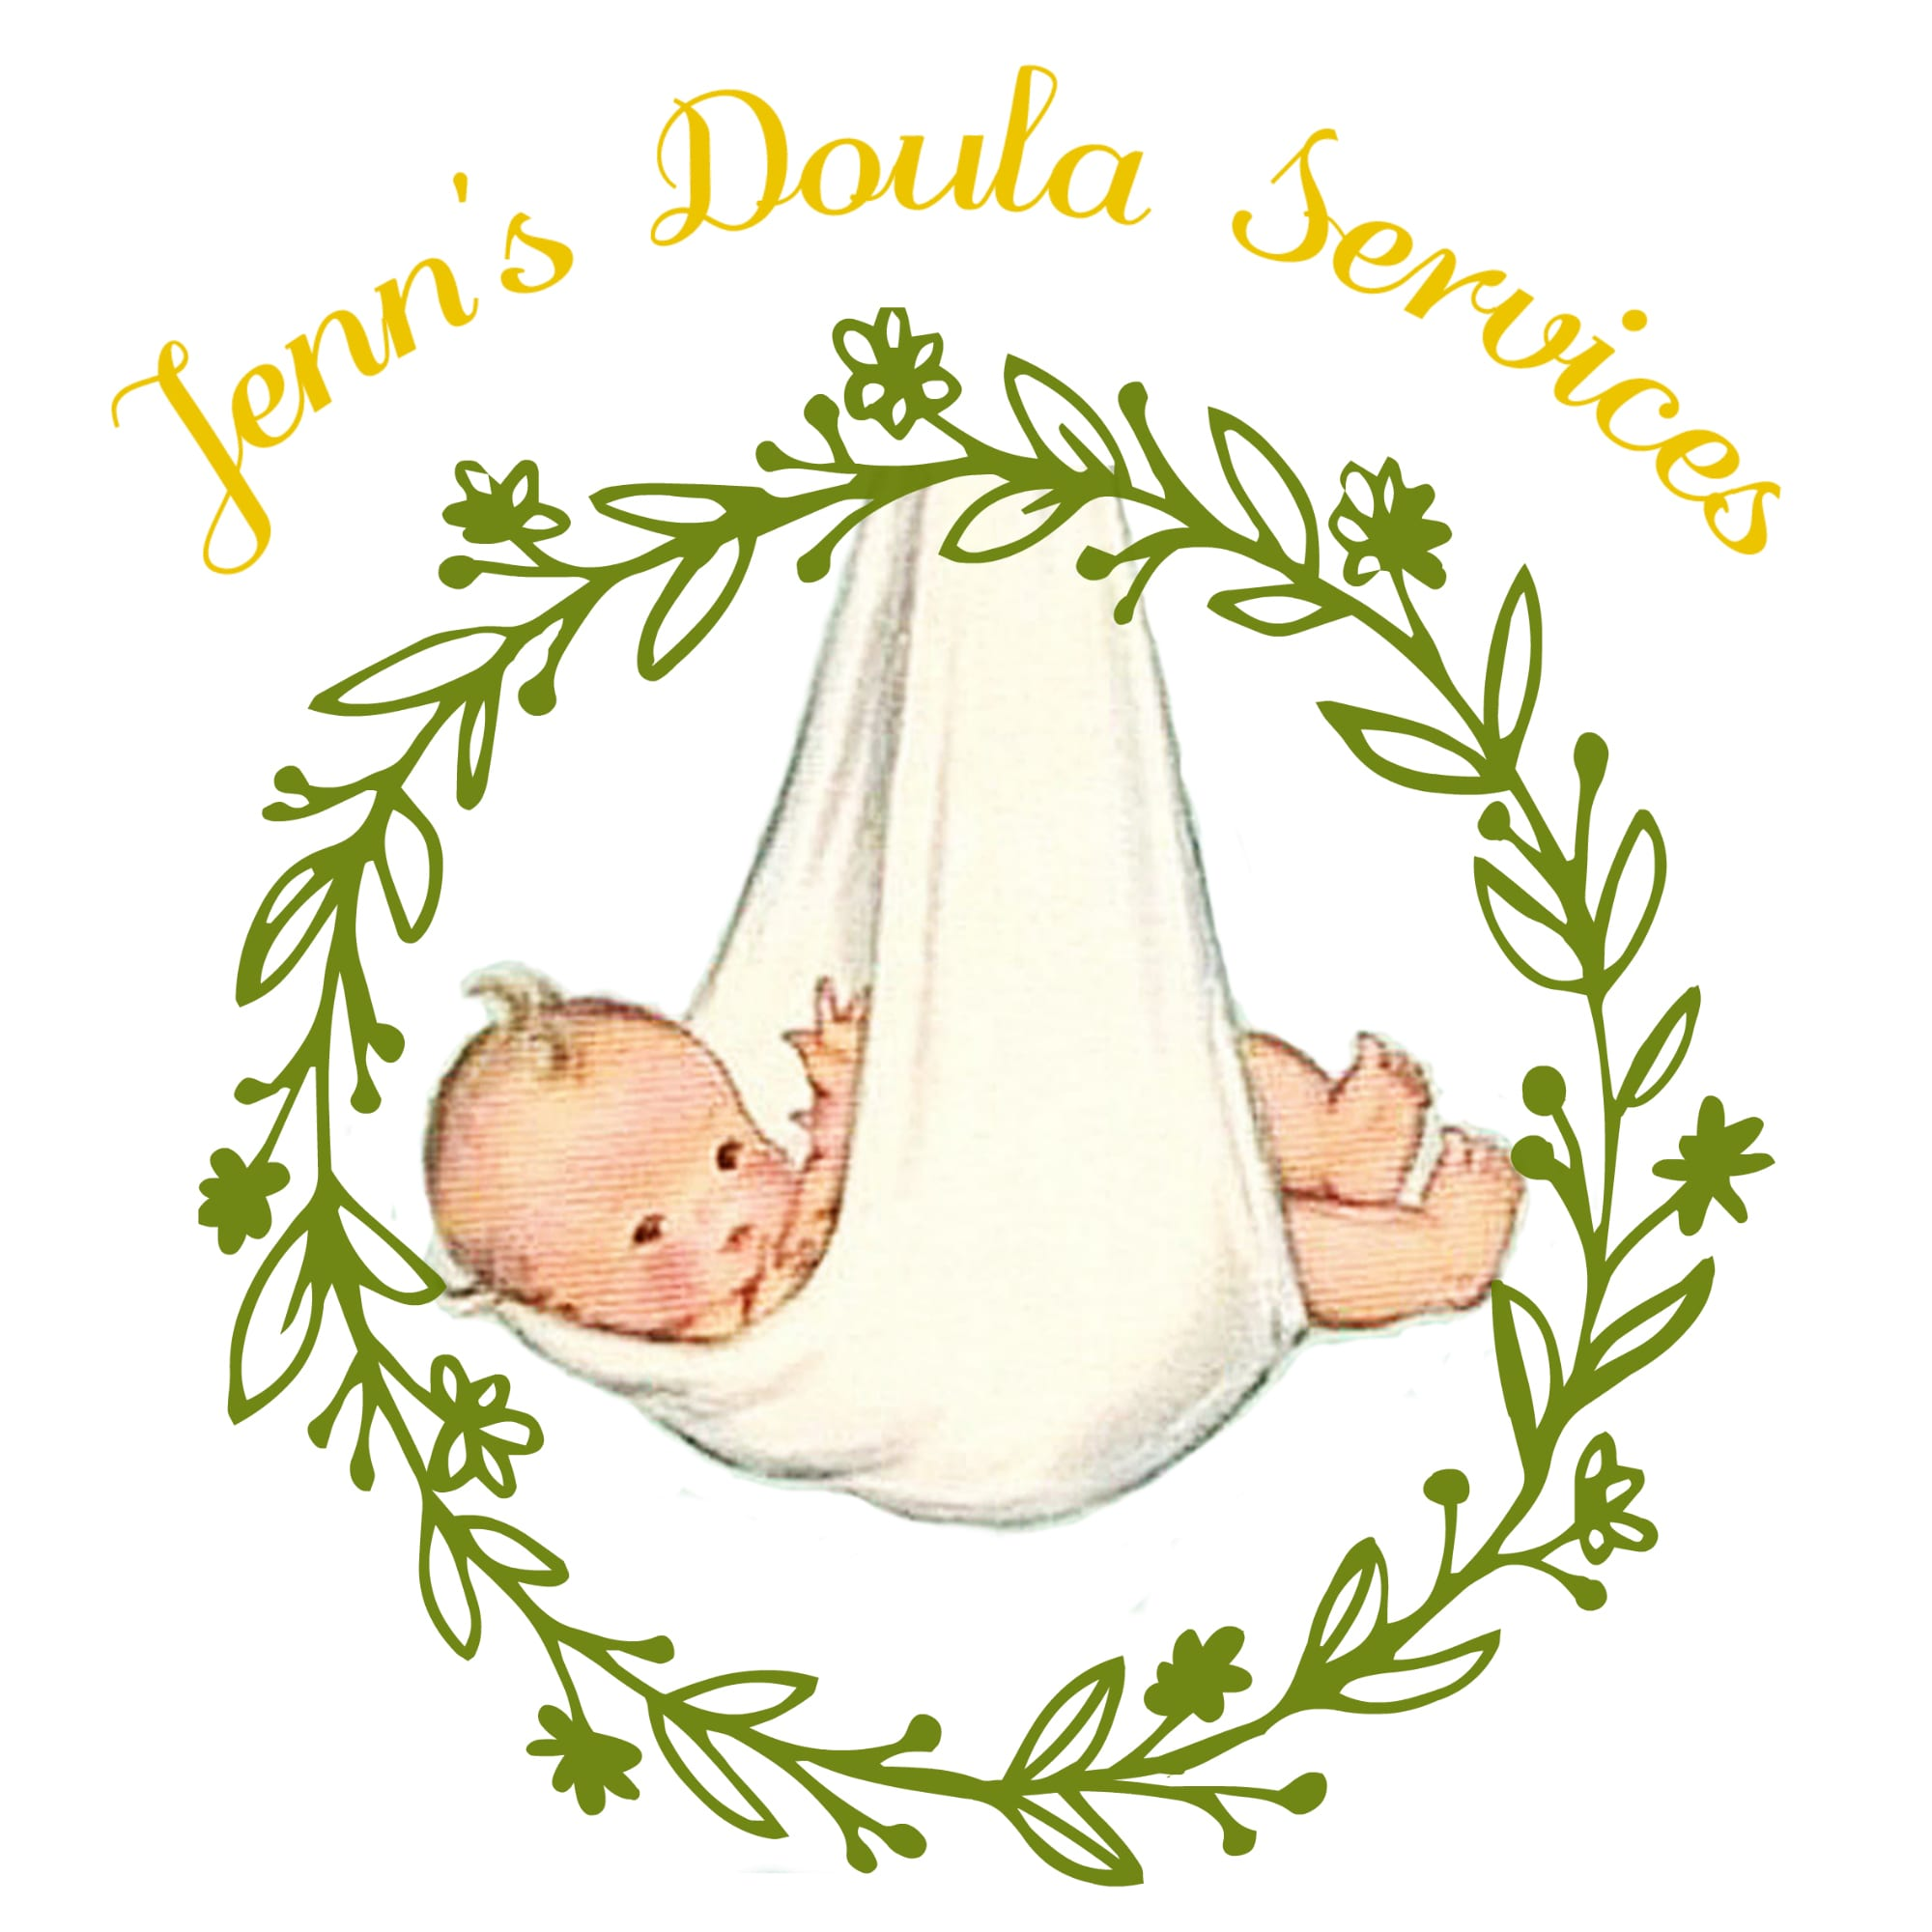 Inland Northwest Doulas & Newborn Care